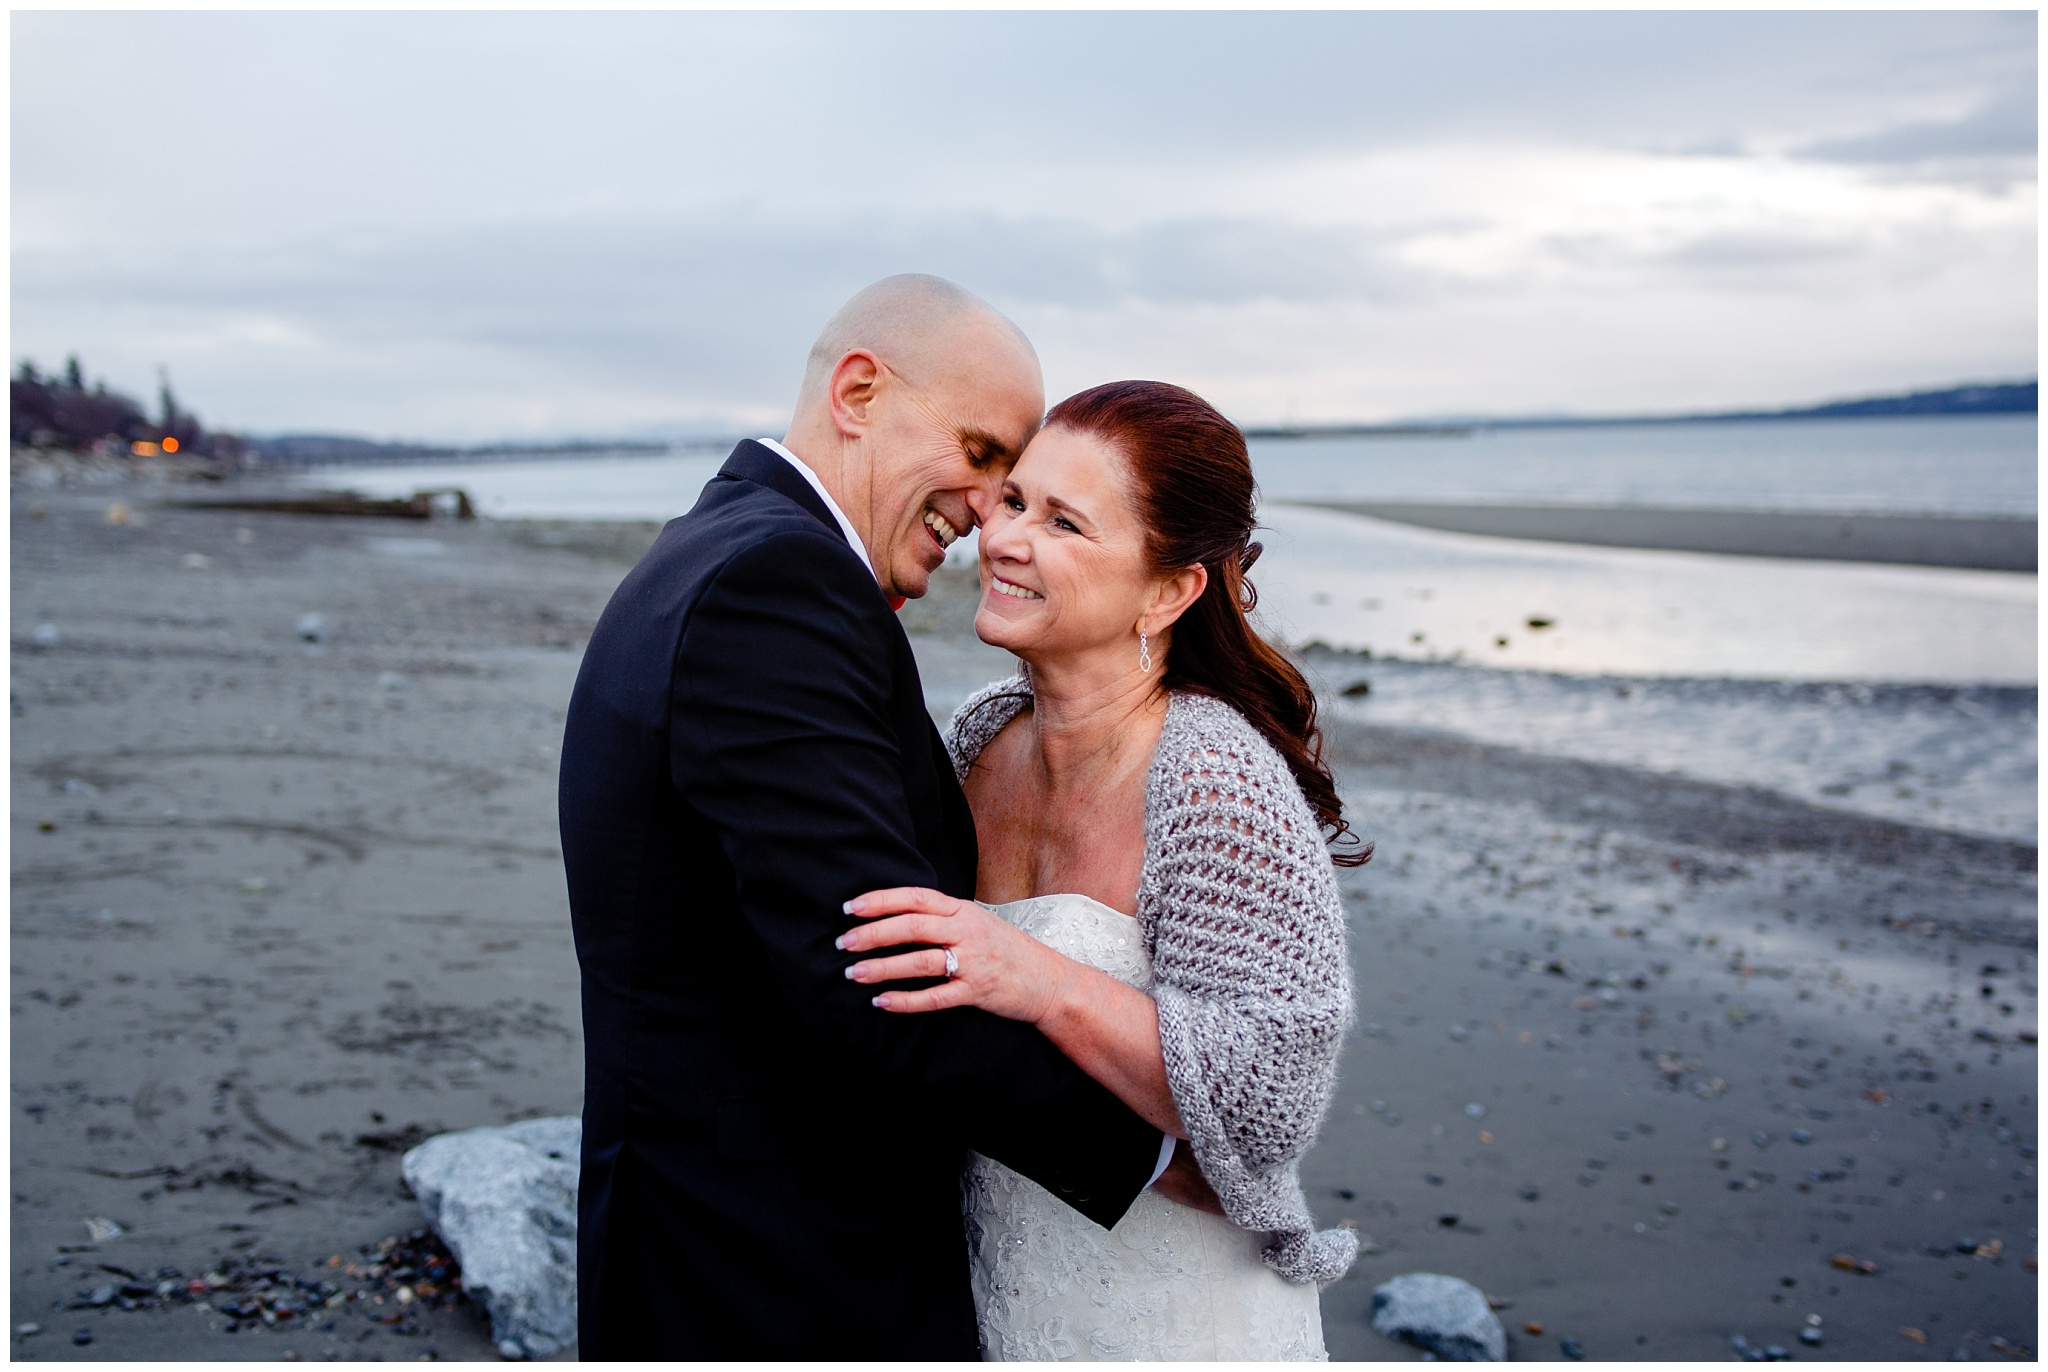 White Rock Intimate Wedding 5 Star Catering Venue Surrey BC Middle Aged Couple_0015.jpg